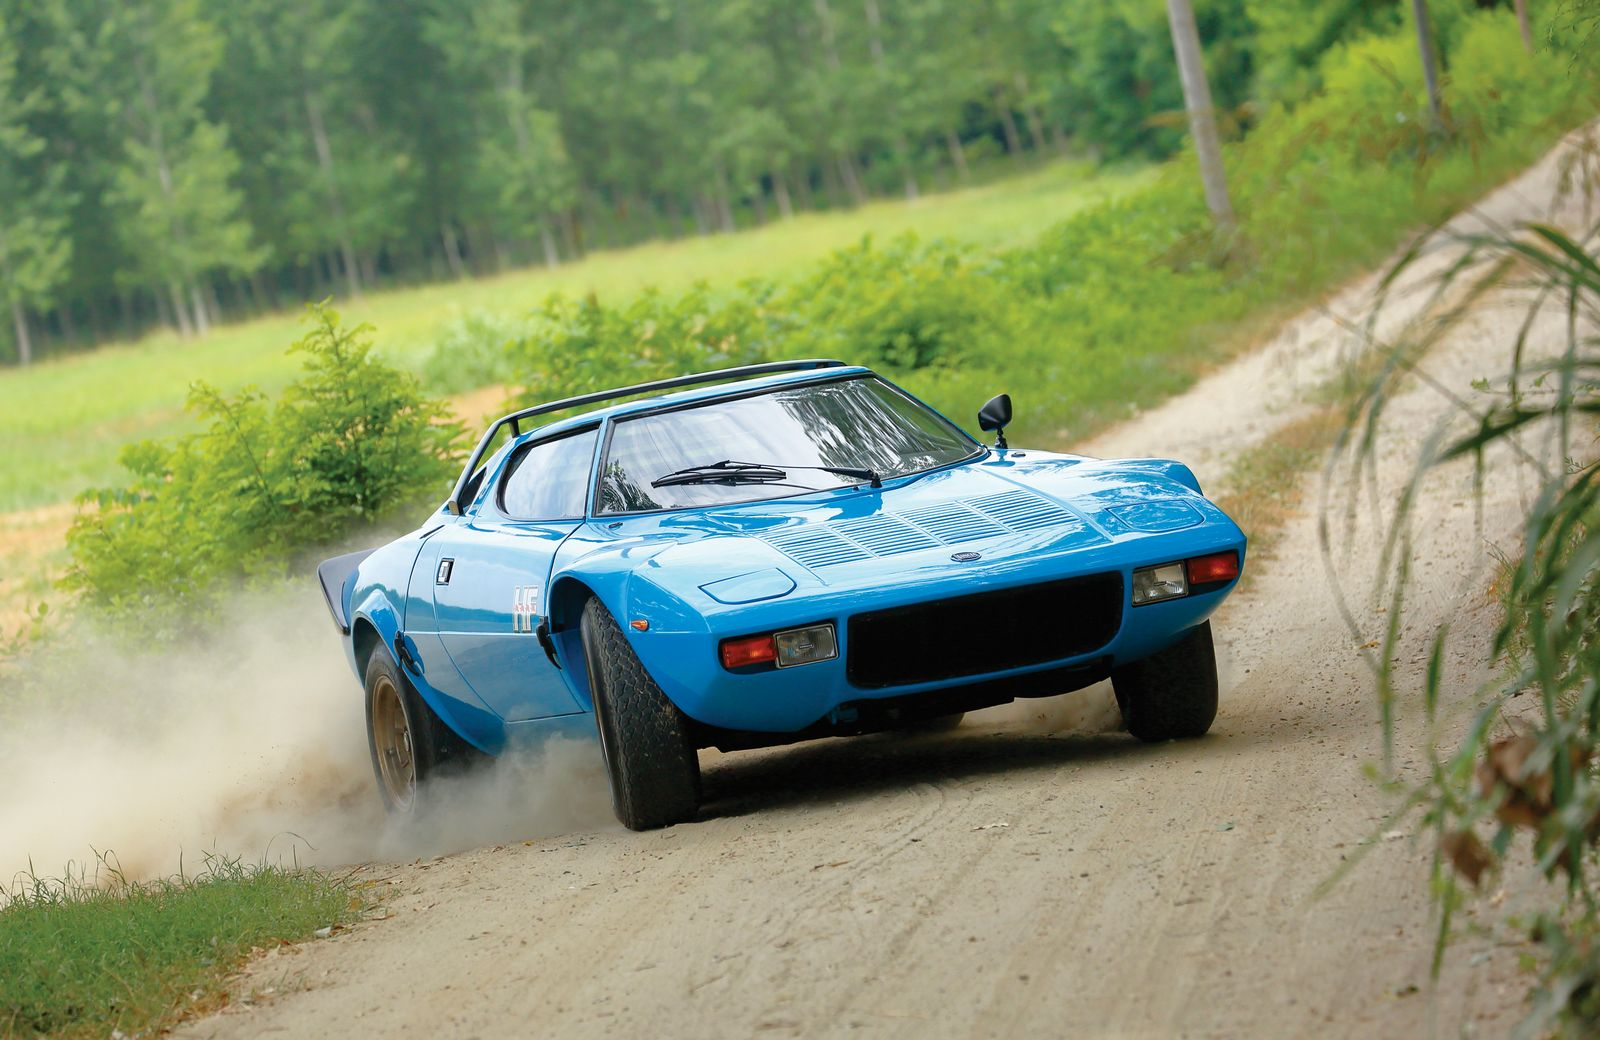 Cars With Pop Up Lights - Lancia Stratos